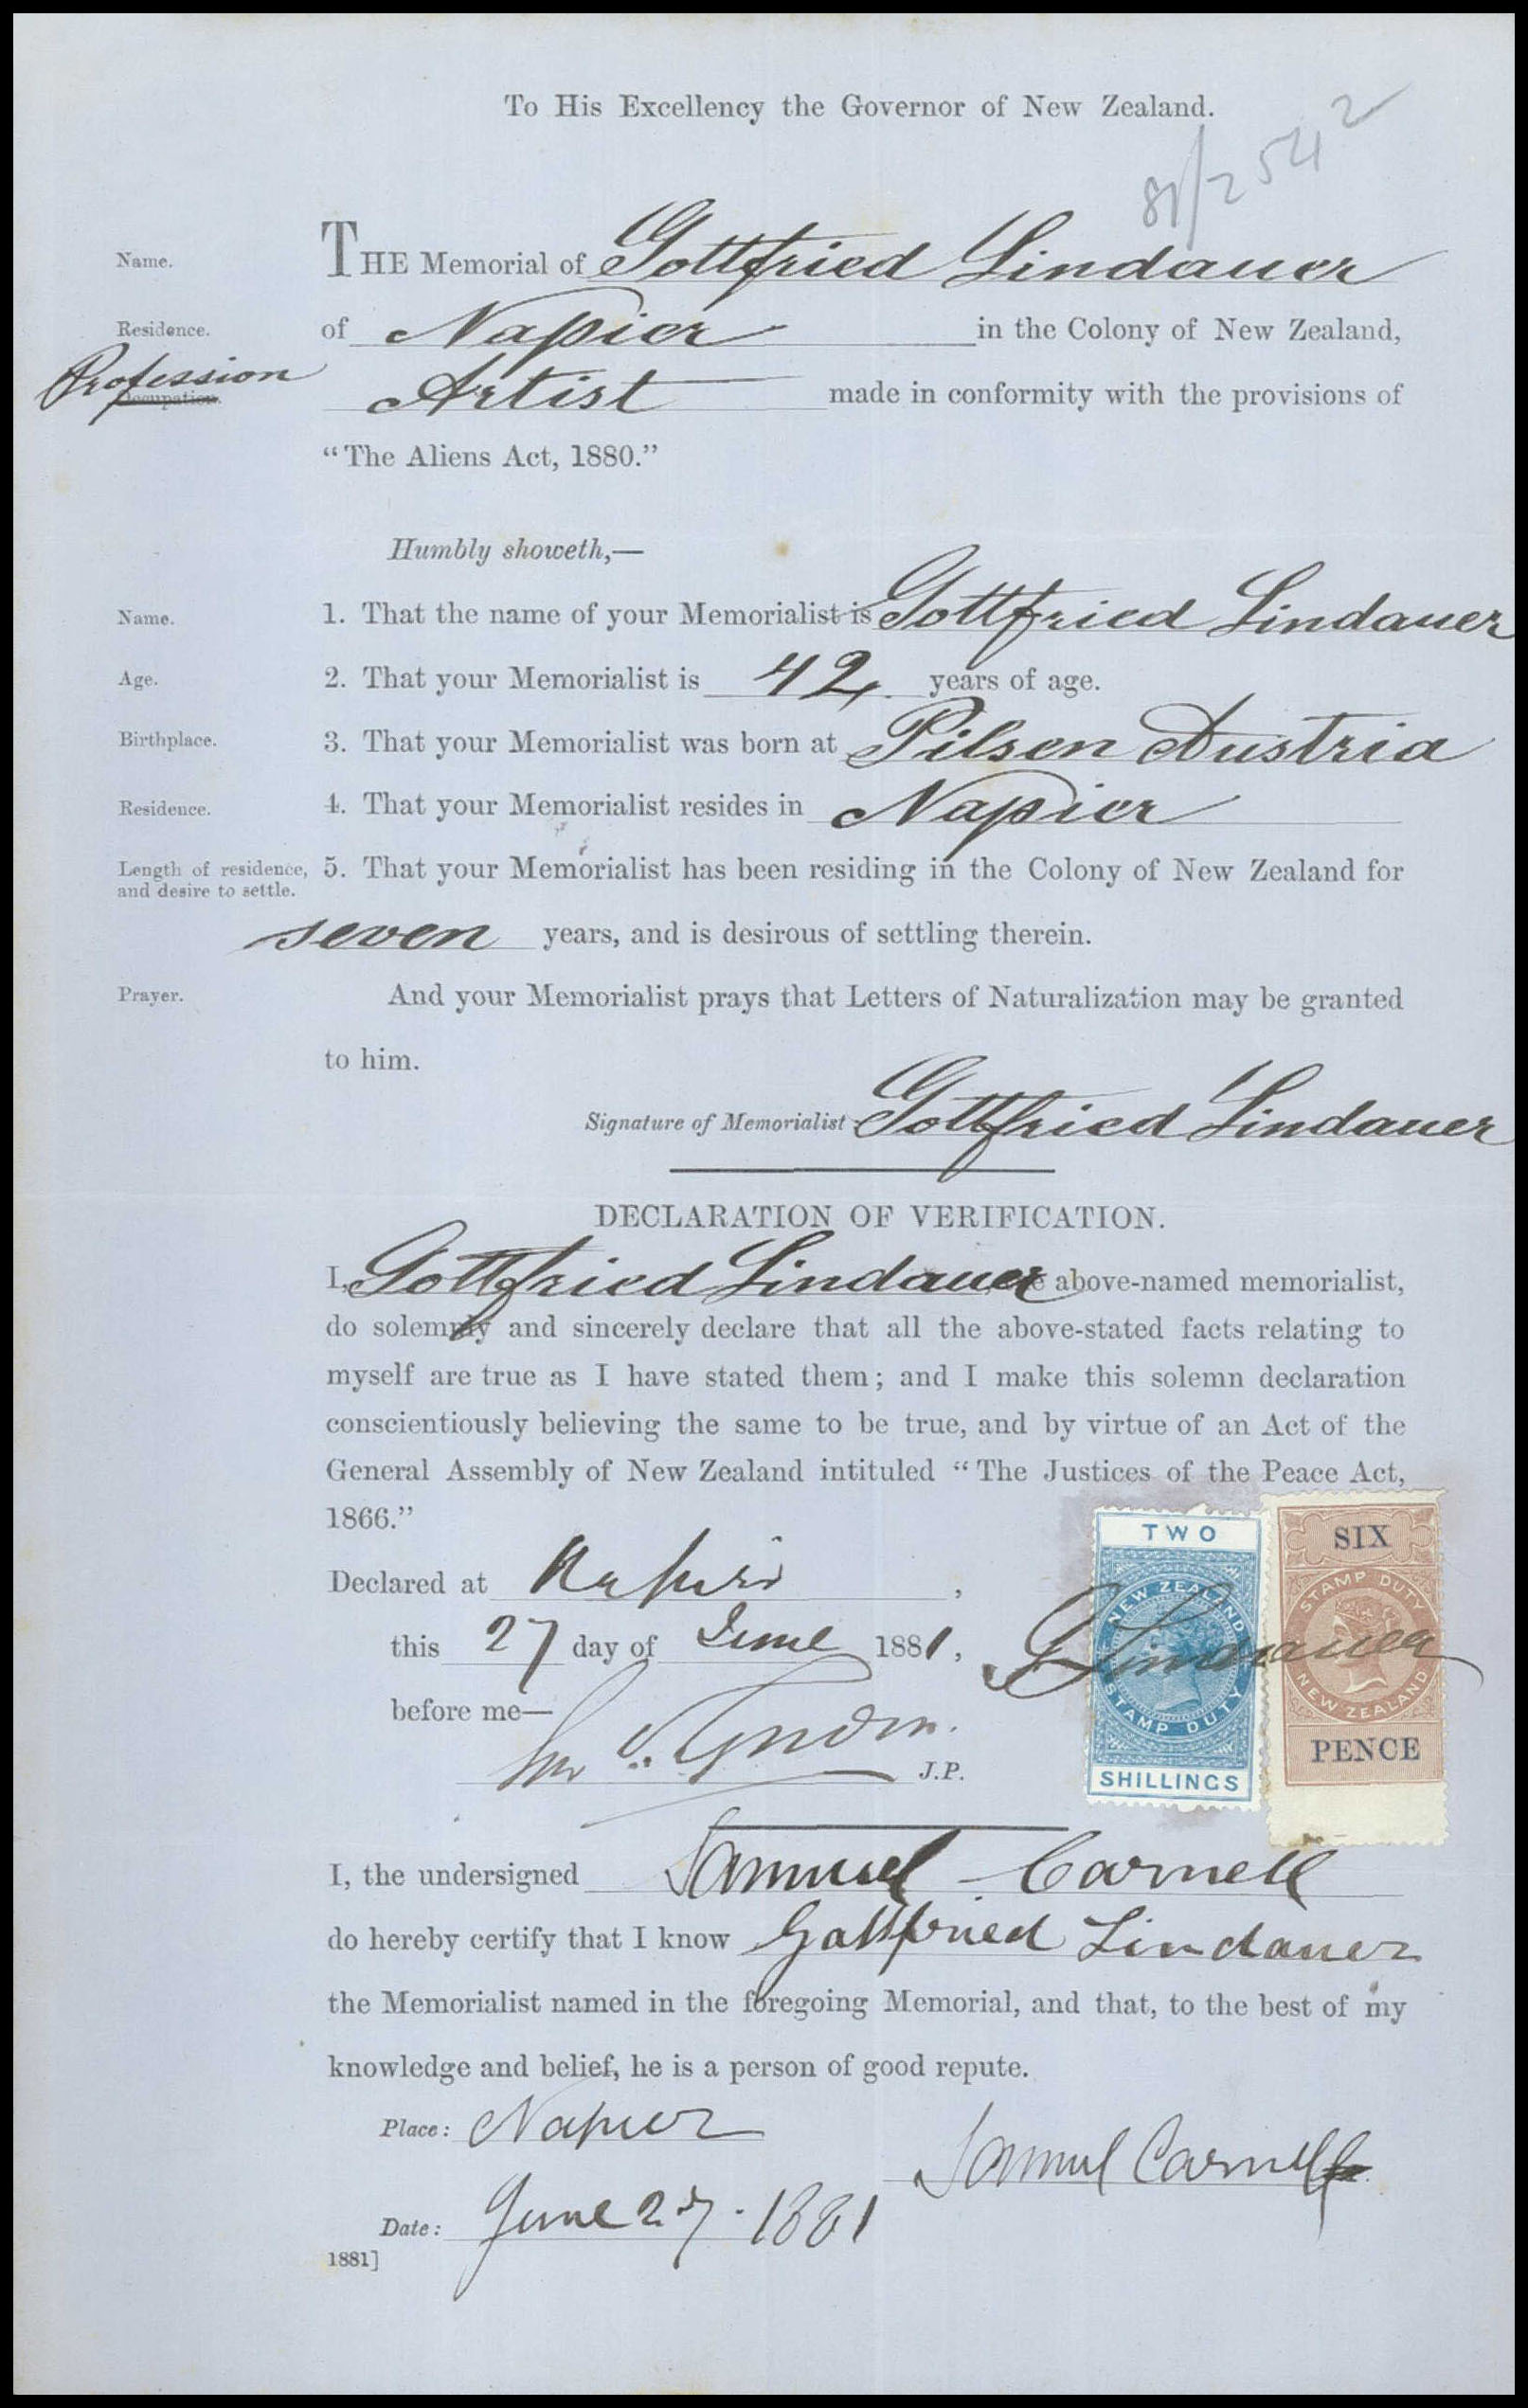 Page from the naturalisation file for Gottfried Lindauer, 1881. Archives New Zealand reference: ACGO 8333 IA1 1145 / [2] 1911/503.